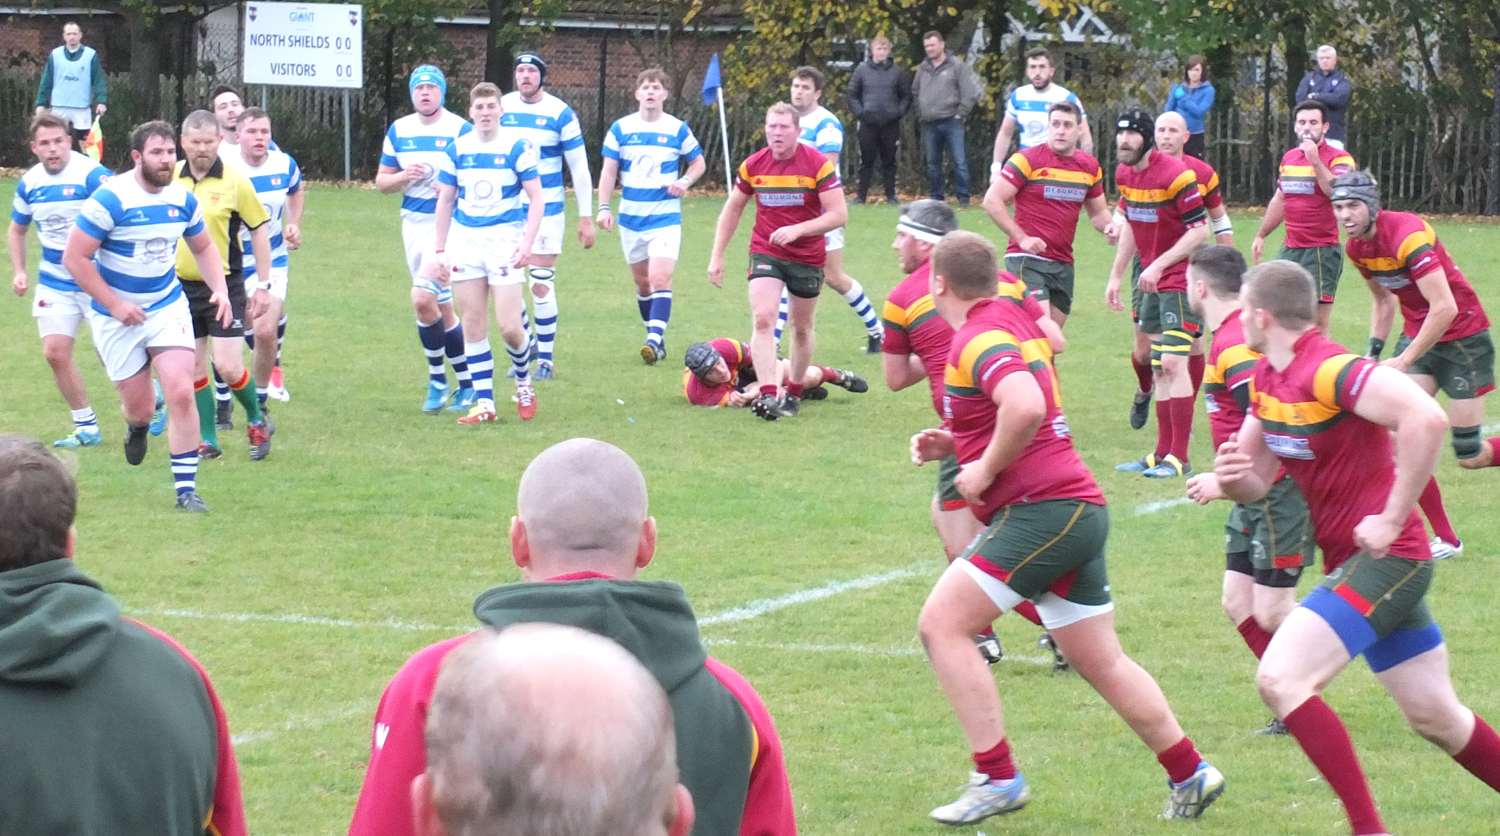 Aycliffe Snatch Victory from Unbeaten North Shields